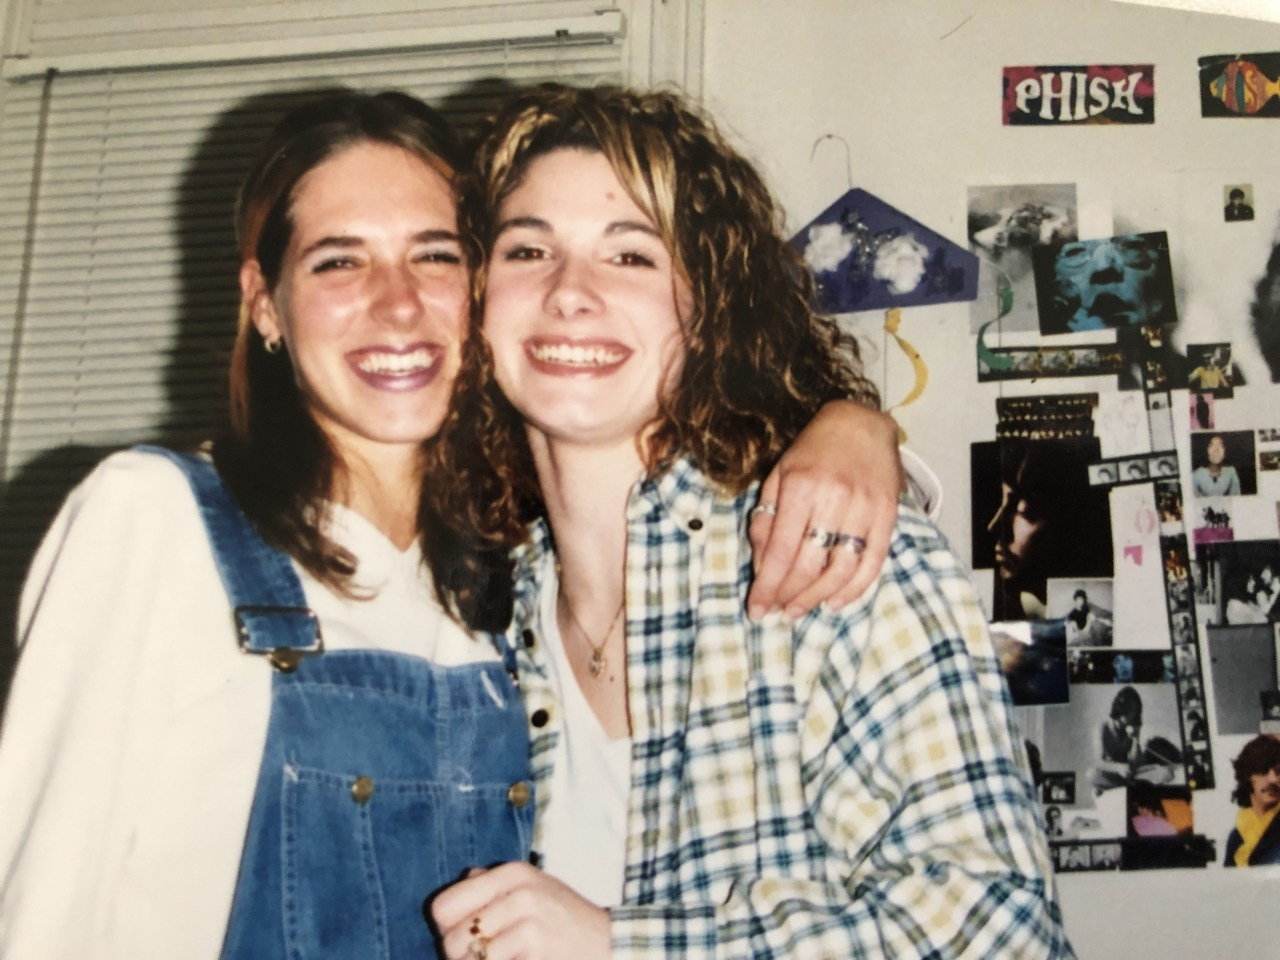 Two college friends hug and smile at the camera